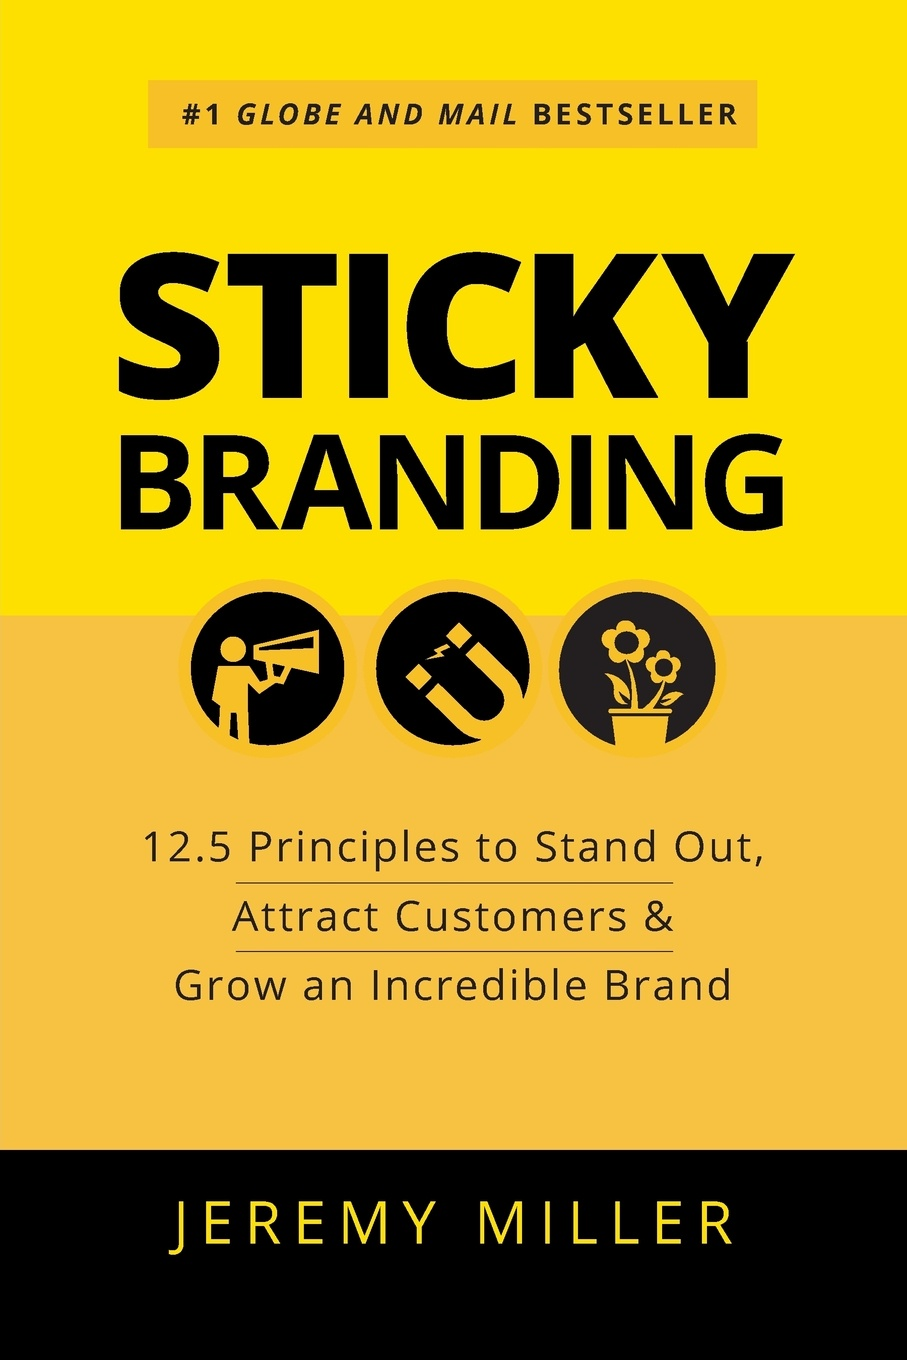 купить Jeremy Miller Sticky Branding. 12.5 Principles to Stand Out, Attract Customers & Grow an Incredible Brand по цене 2014 рублей